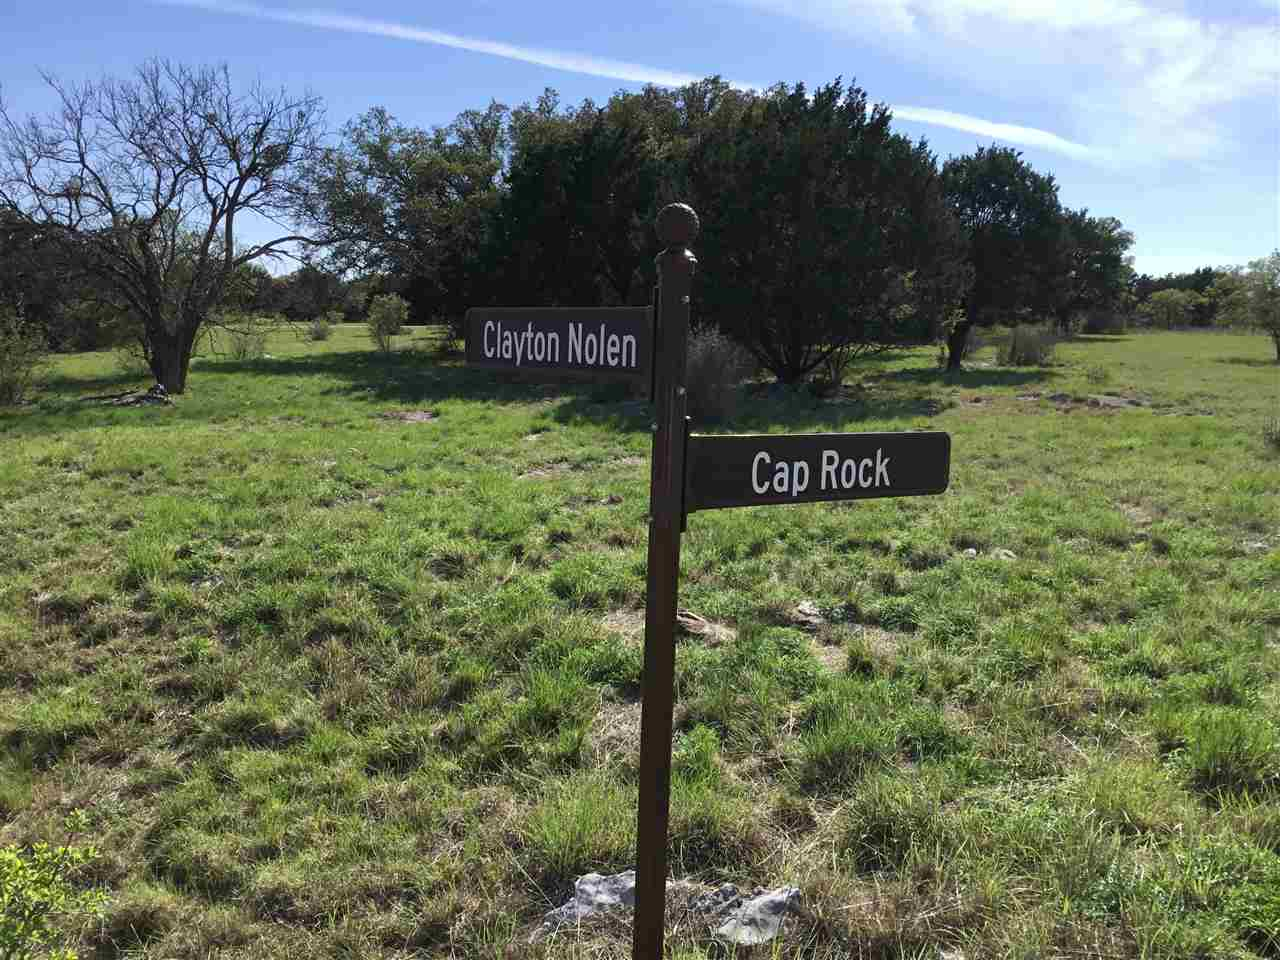 Terreno por un Venta en 1102 Cap Rock Horseshoe Bay, Texas 78657 Estados Unidos